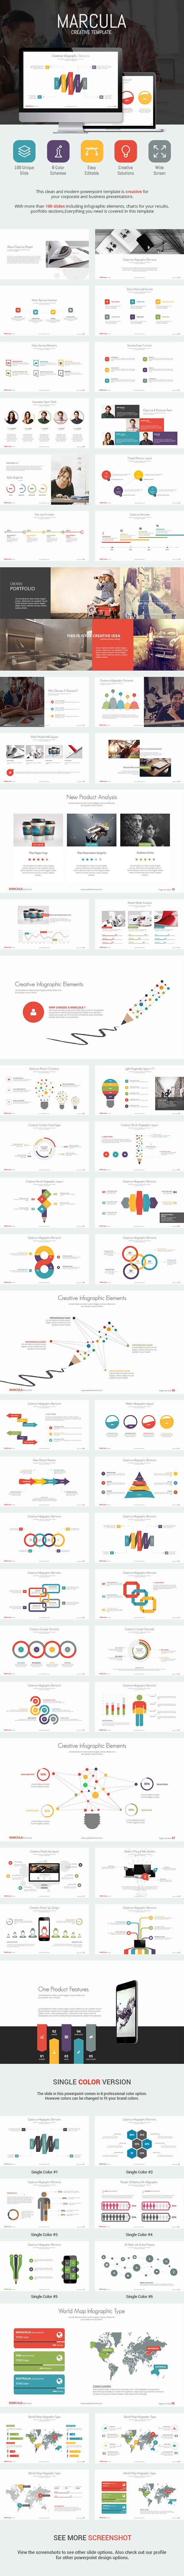 Marcula - Presentation Template - PowerPoint Templates Presentation Templates